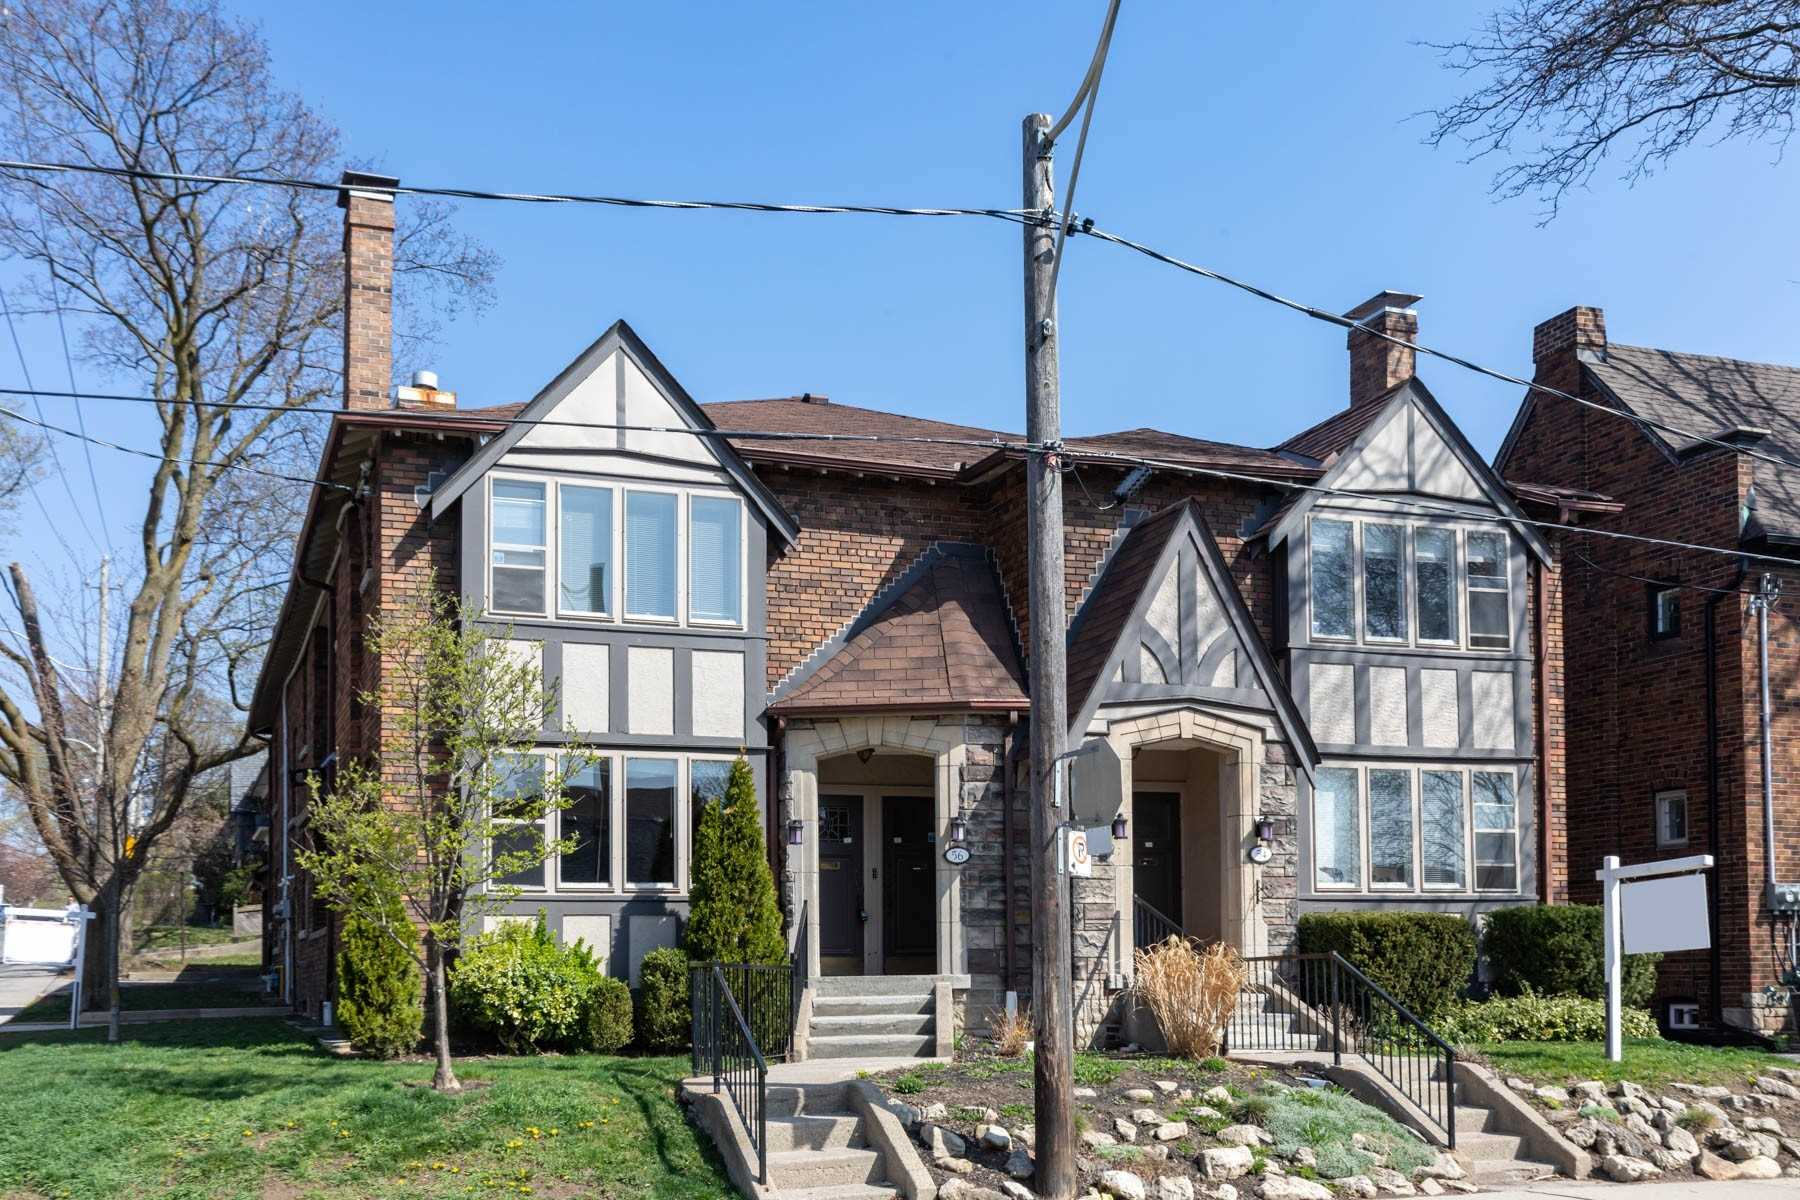 54-56 College View Ave, Toronto, Ontario M5P 1J5, 9 Bedrooms Bedrooms, 22 Rooms Rooms,8 BathroomsBathrooms,Multiplex,For Sale,College View,C5304054